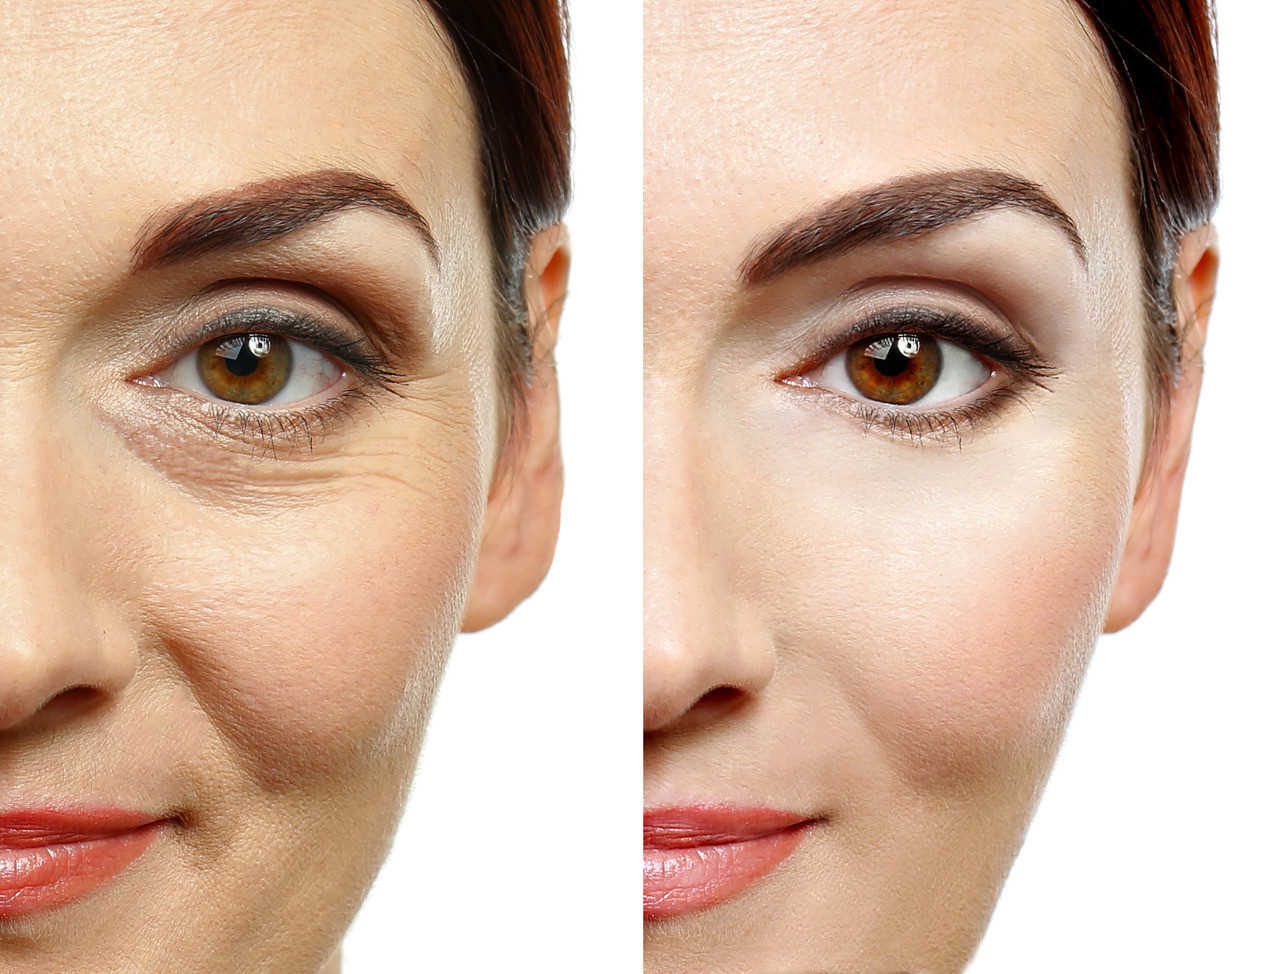 ViteLift Serum works instantly for visible results, tightening and lifting skin erasing years off your face for the day.